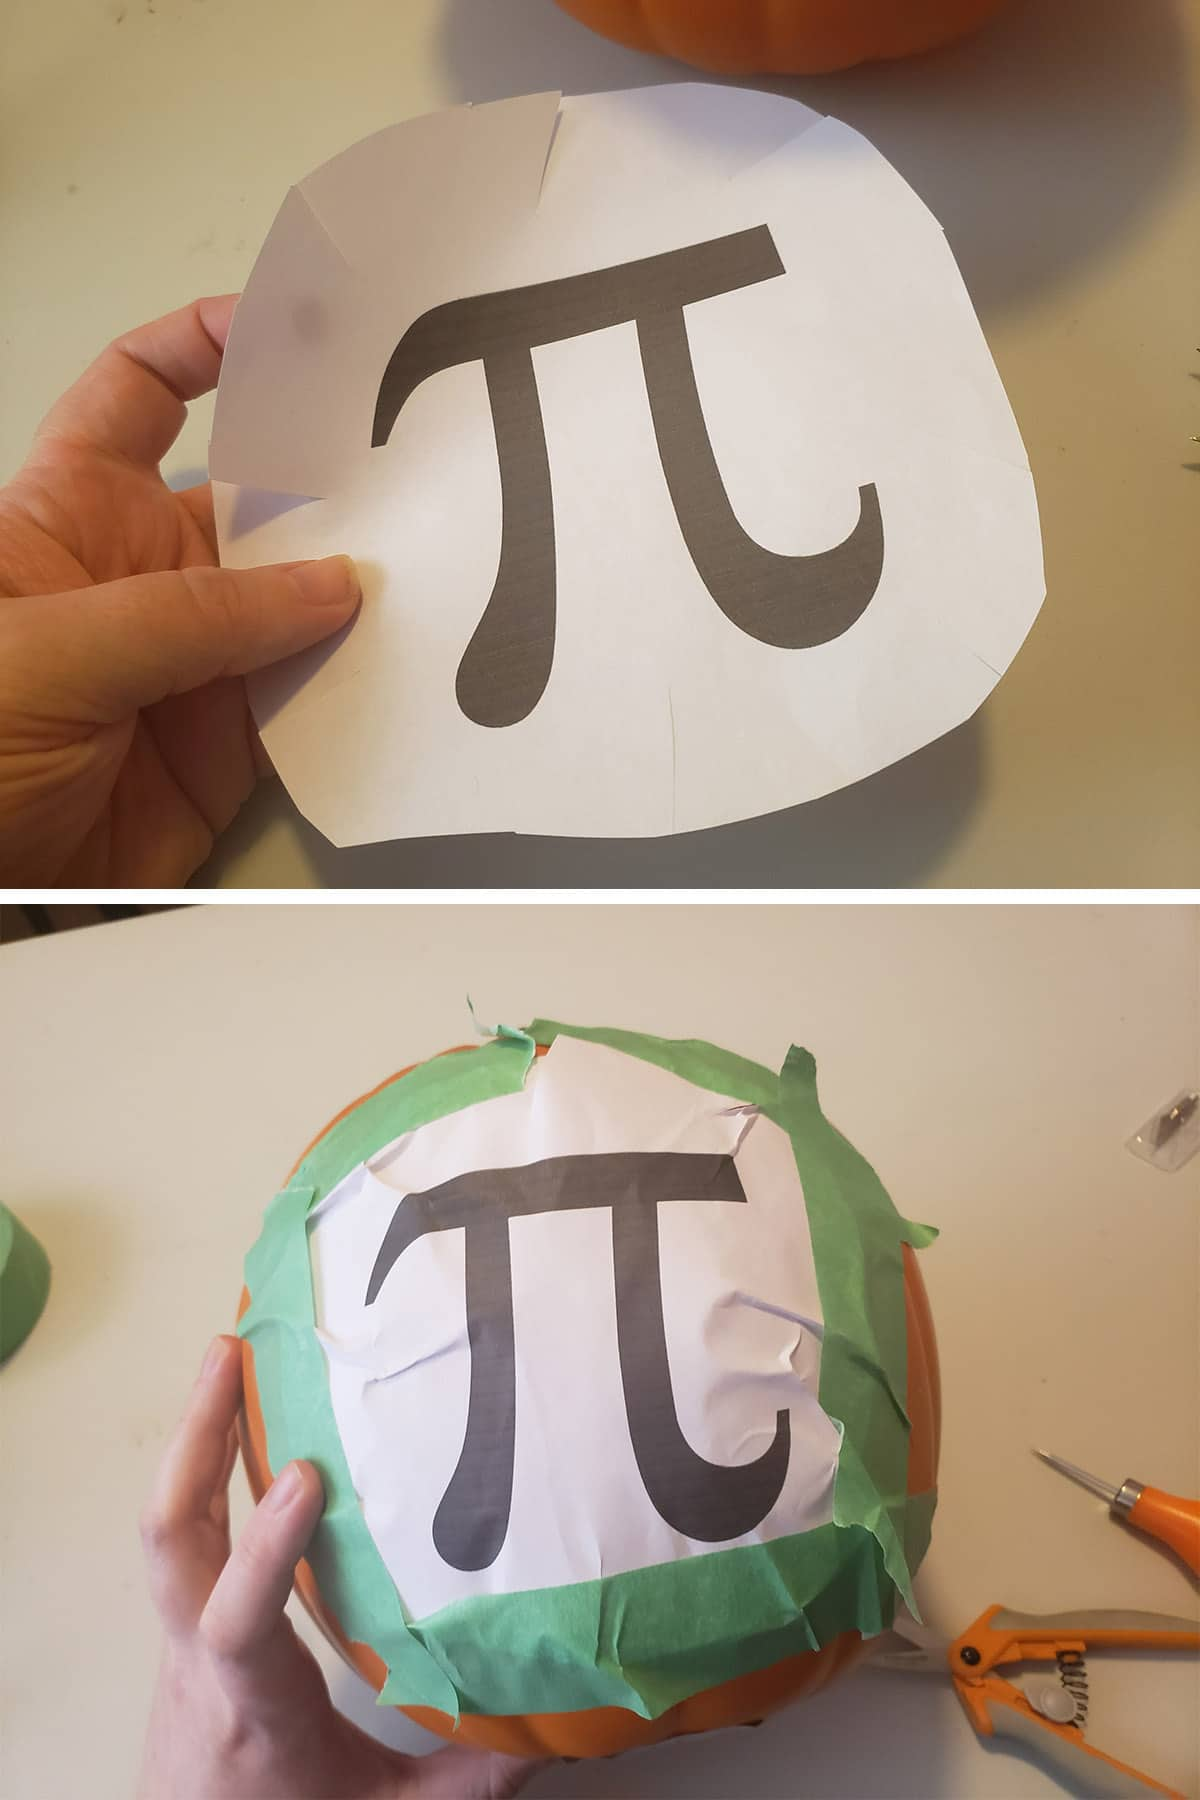 A paper with the pi symbol being taped to a foam pumpkin.